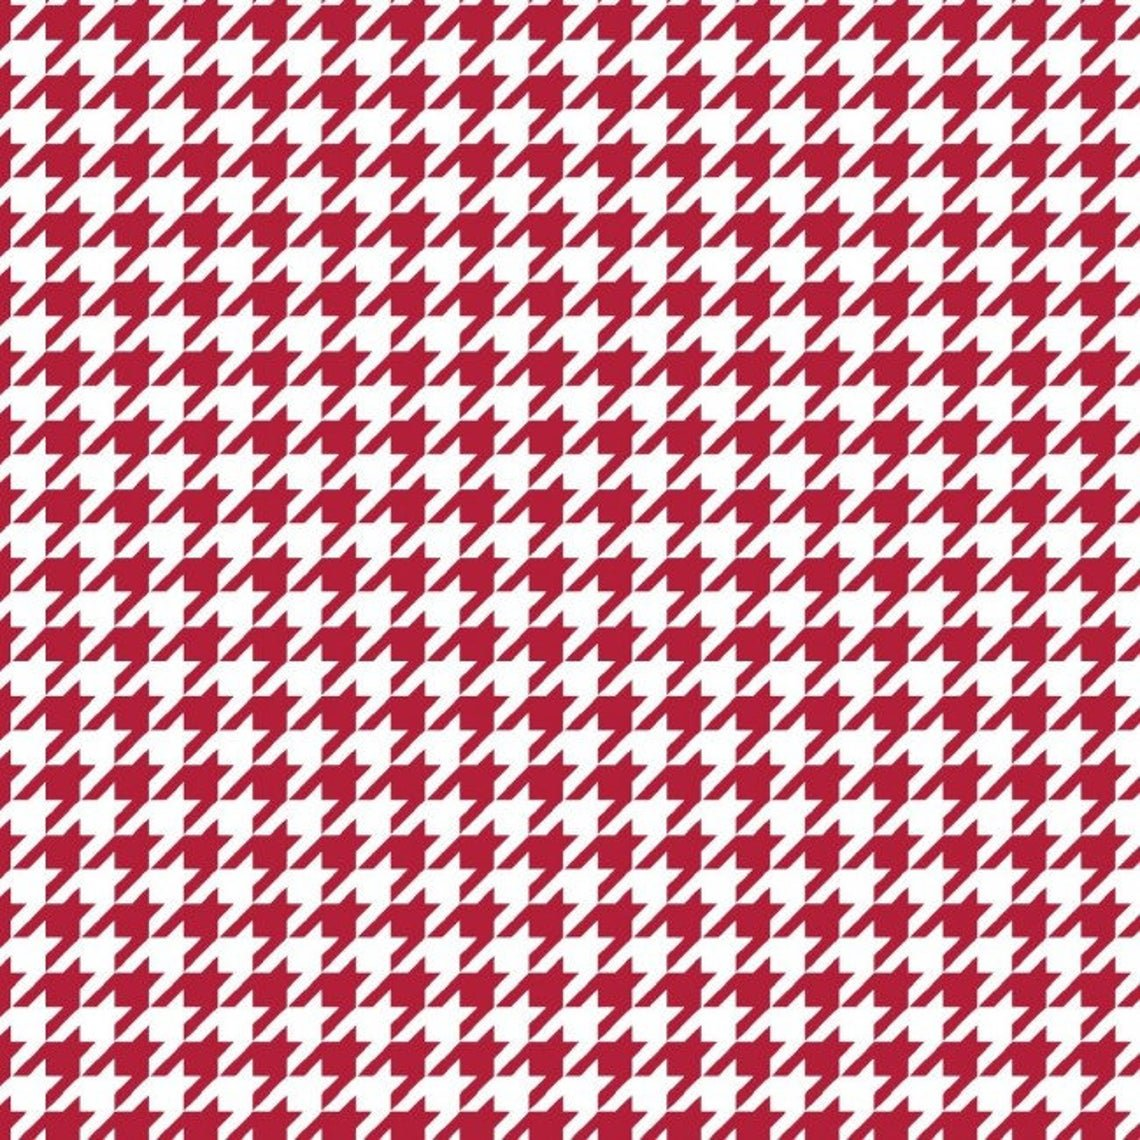 Houndstooth- Red and White